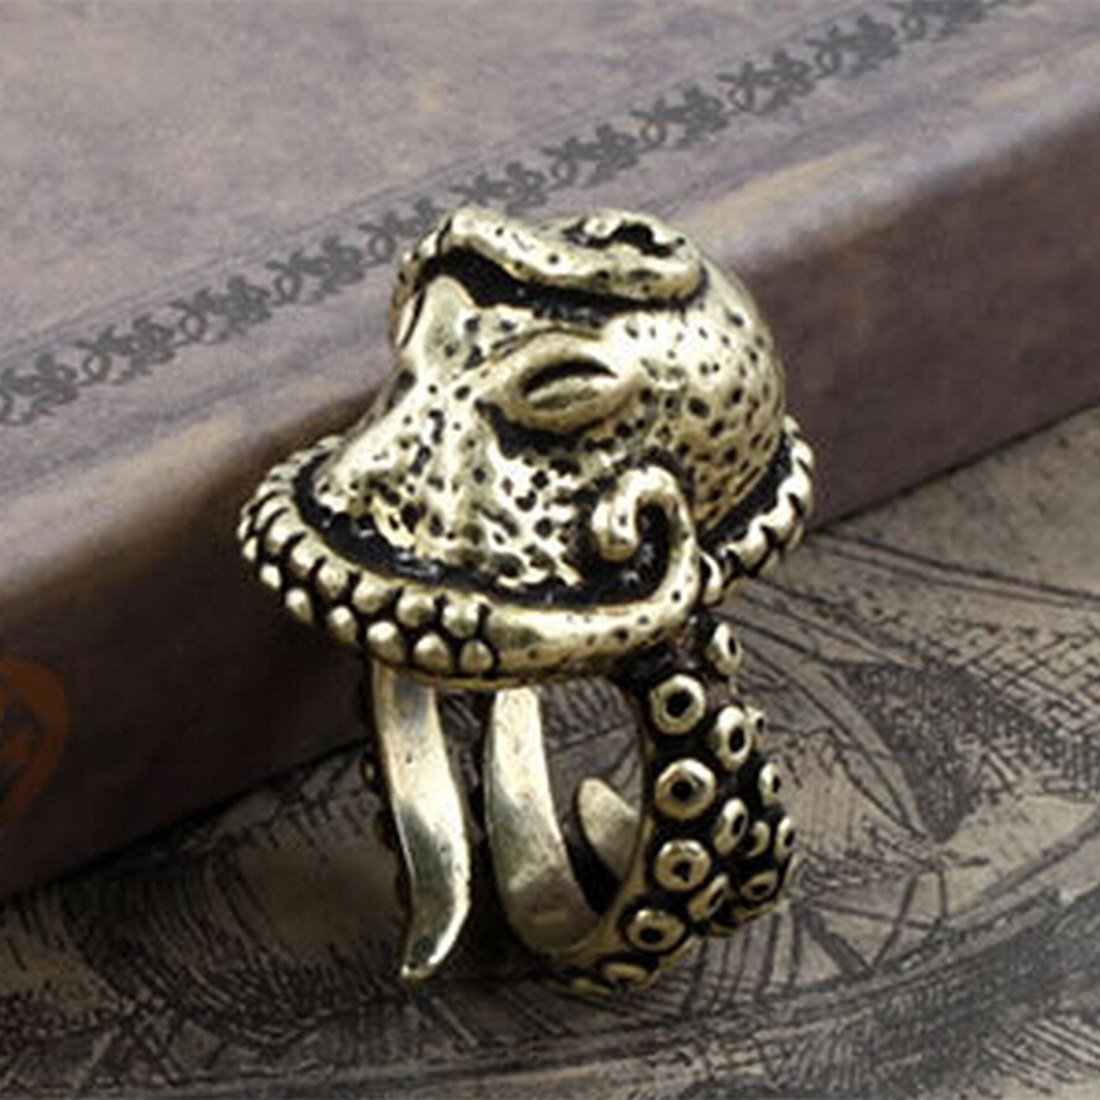 Deluxe Adult Costumes - Men's antique vintage style bronze octopus squid kraken pirate ring